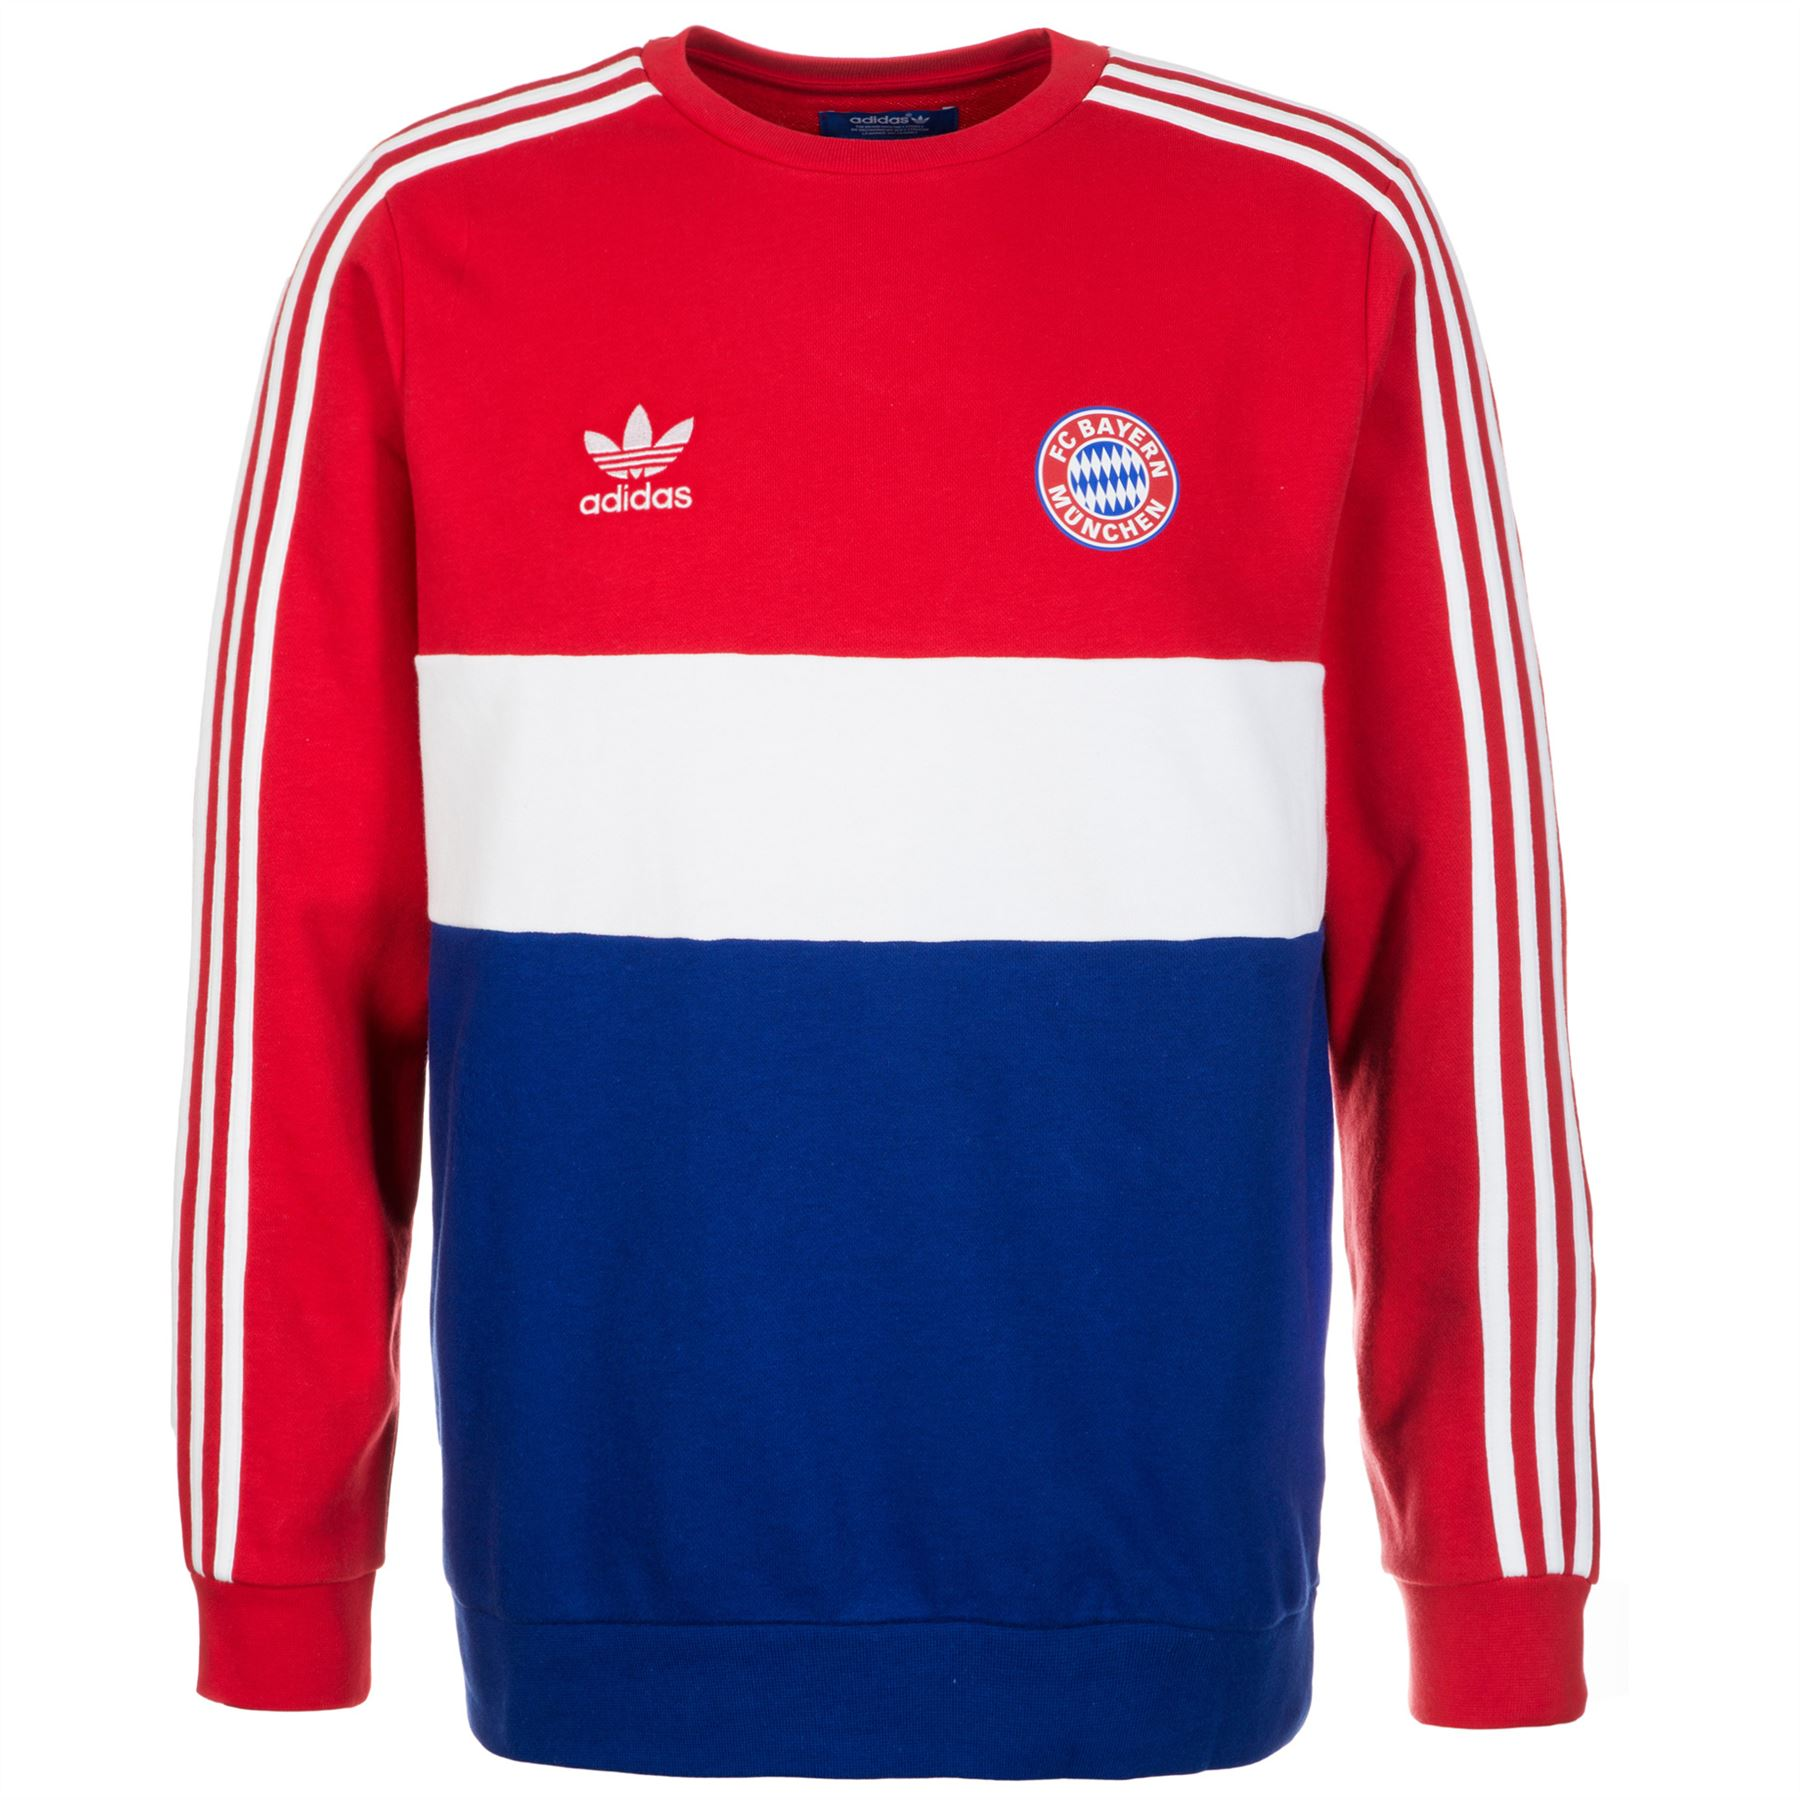 Heimess Man Baby Gym Red Amazon Co Uk Baby Adidas Bayern Munich Crew Sweatshirt Mens Red White Blue